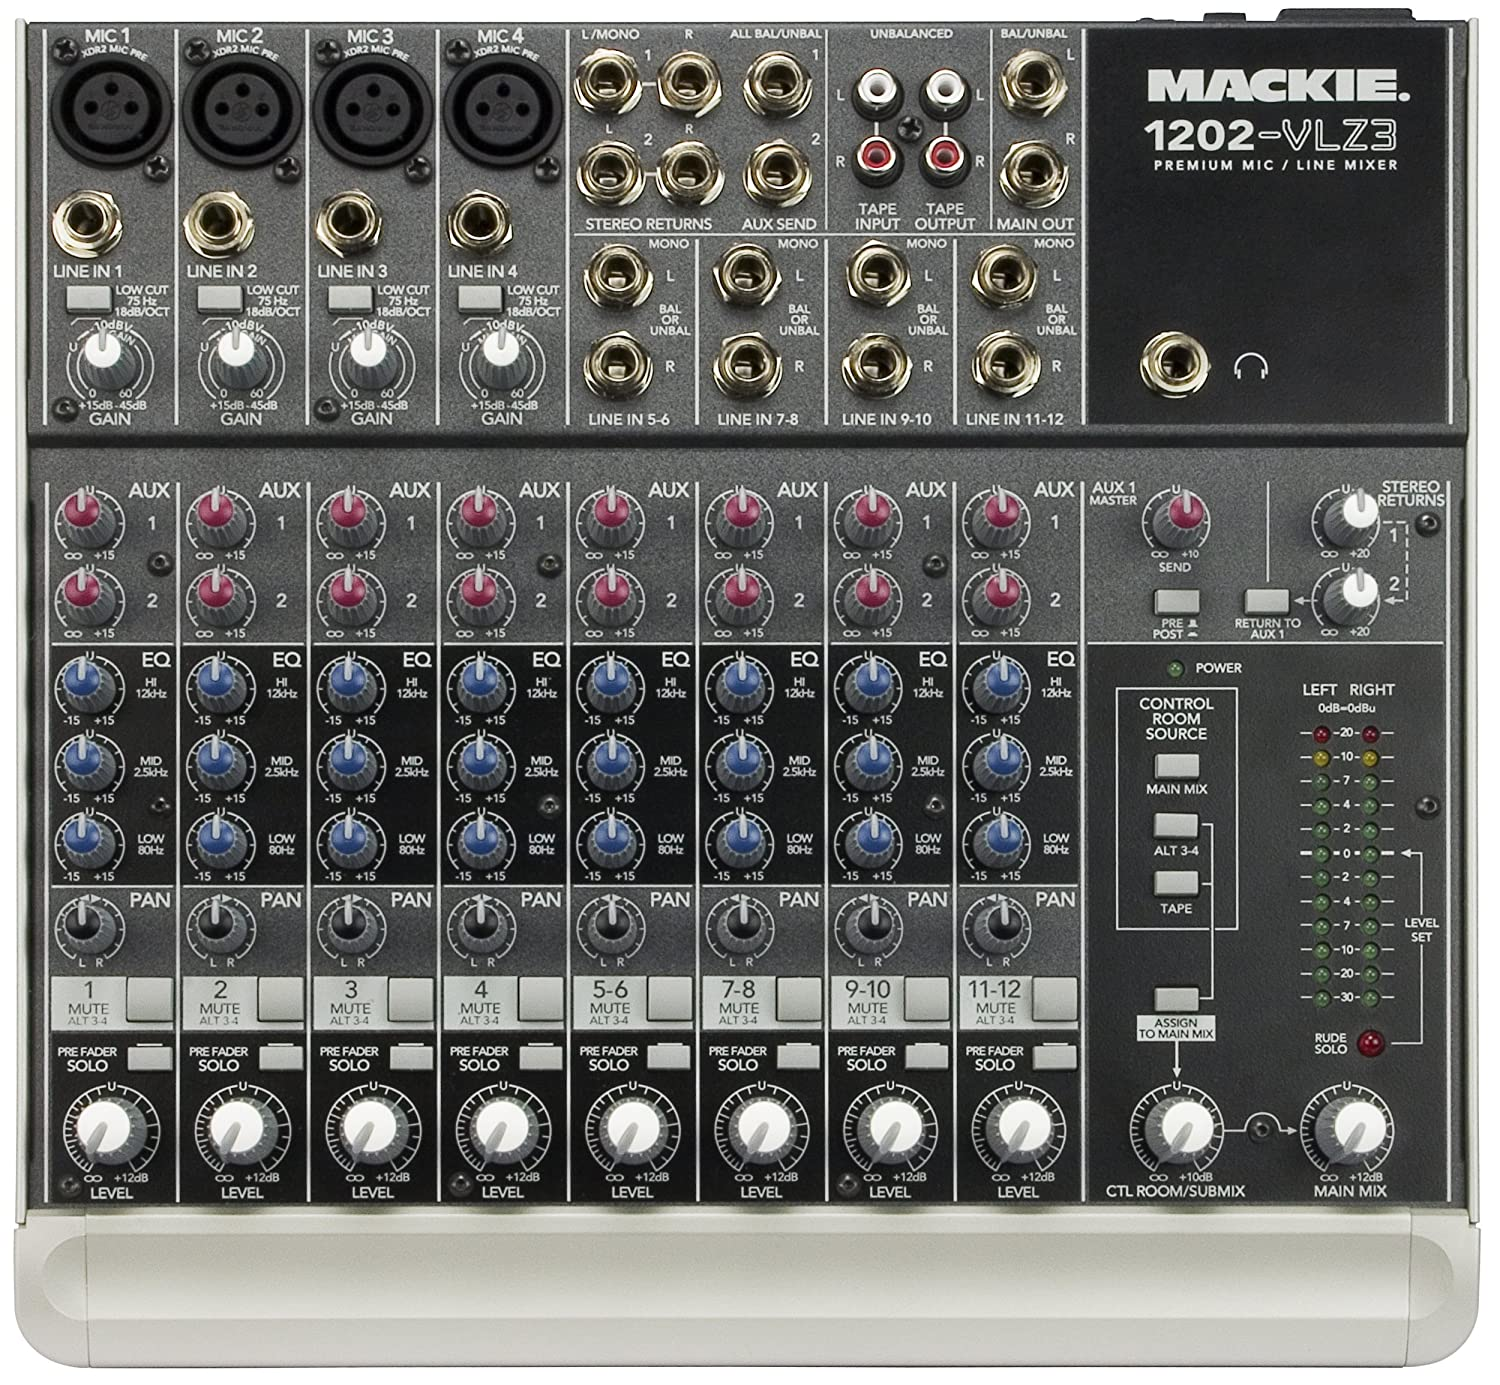 Line Mixer Electronics Circuits For You Mackie 1202 Vlz3 12 Channel Compact Recording Sr Musical Instruments